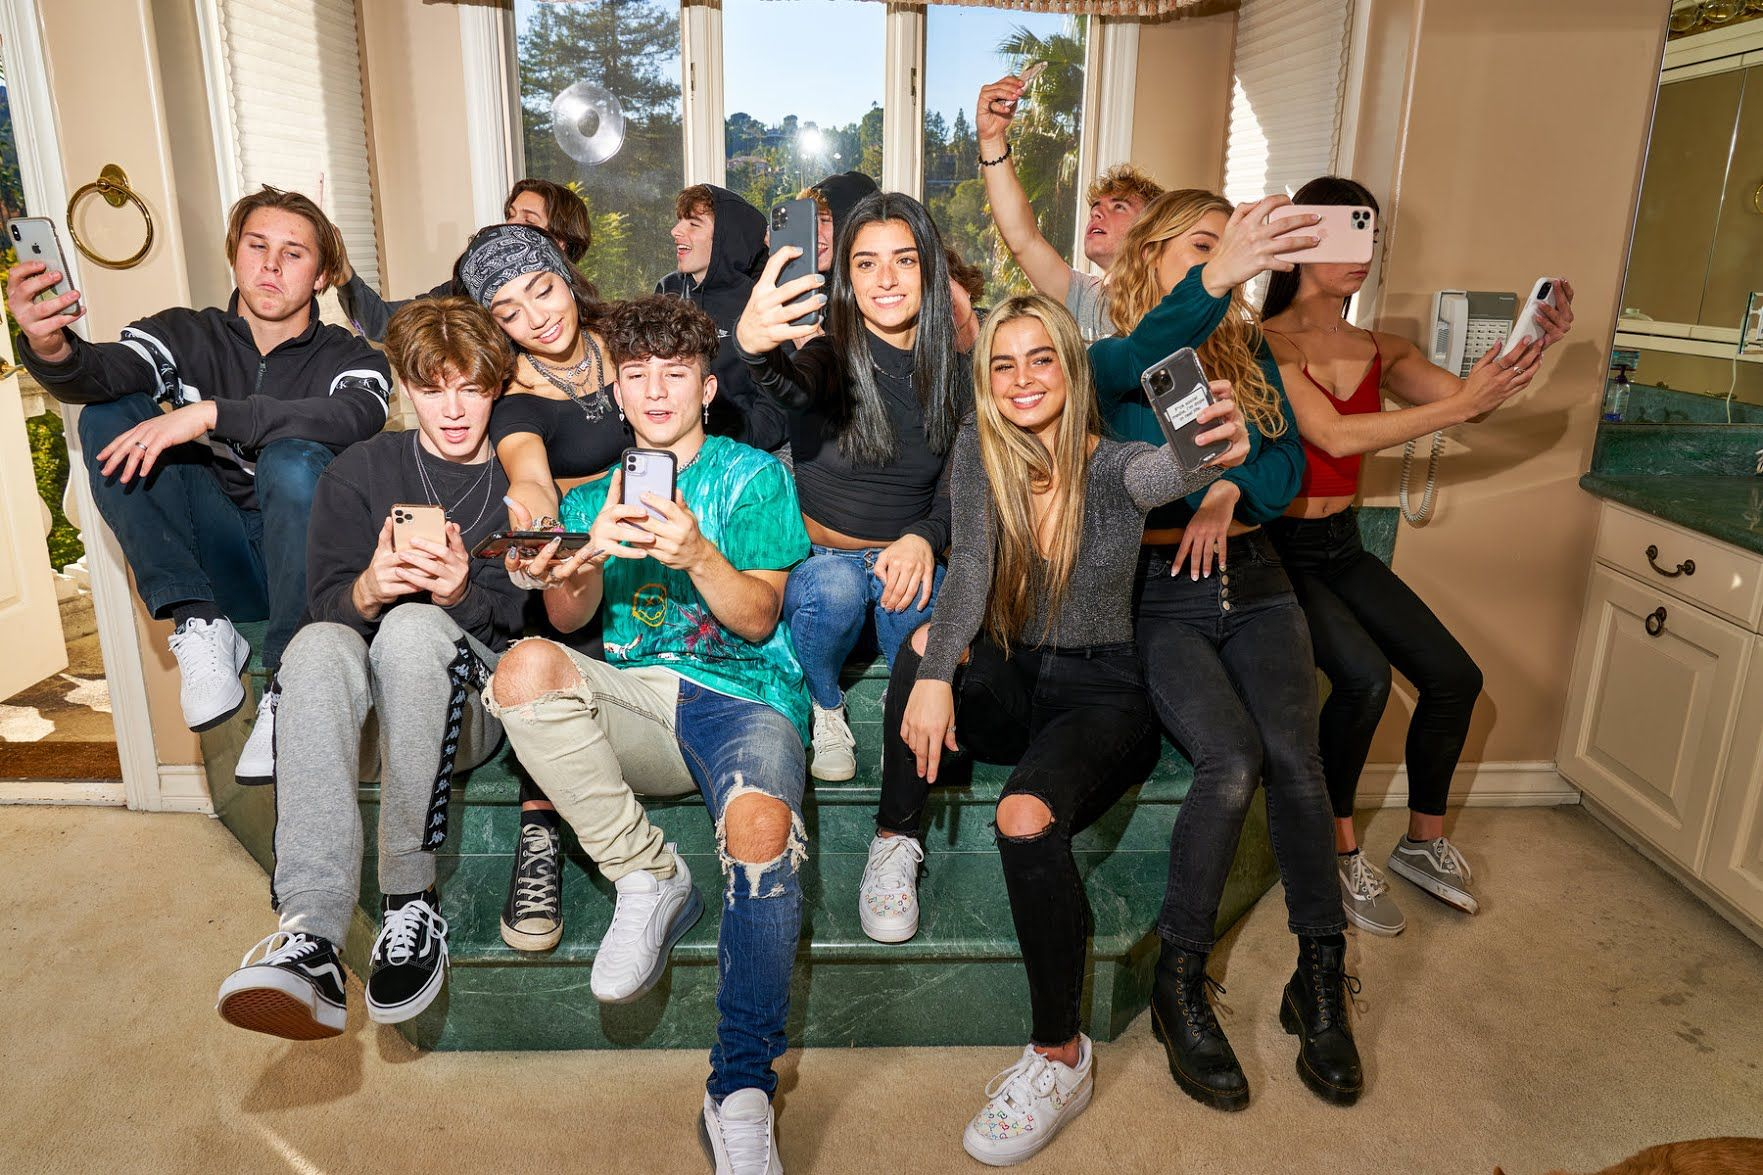 The Hype House Hype Friend Photoshoot Mansions